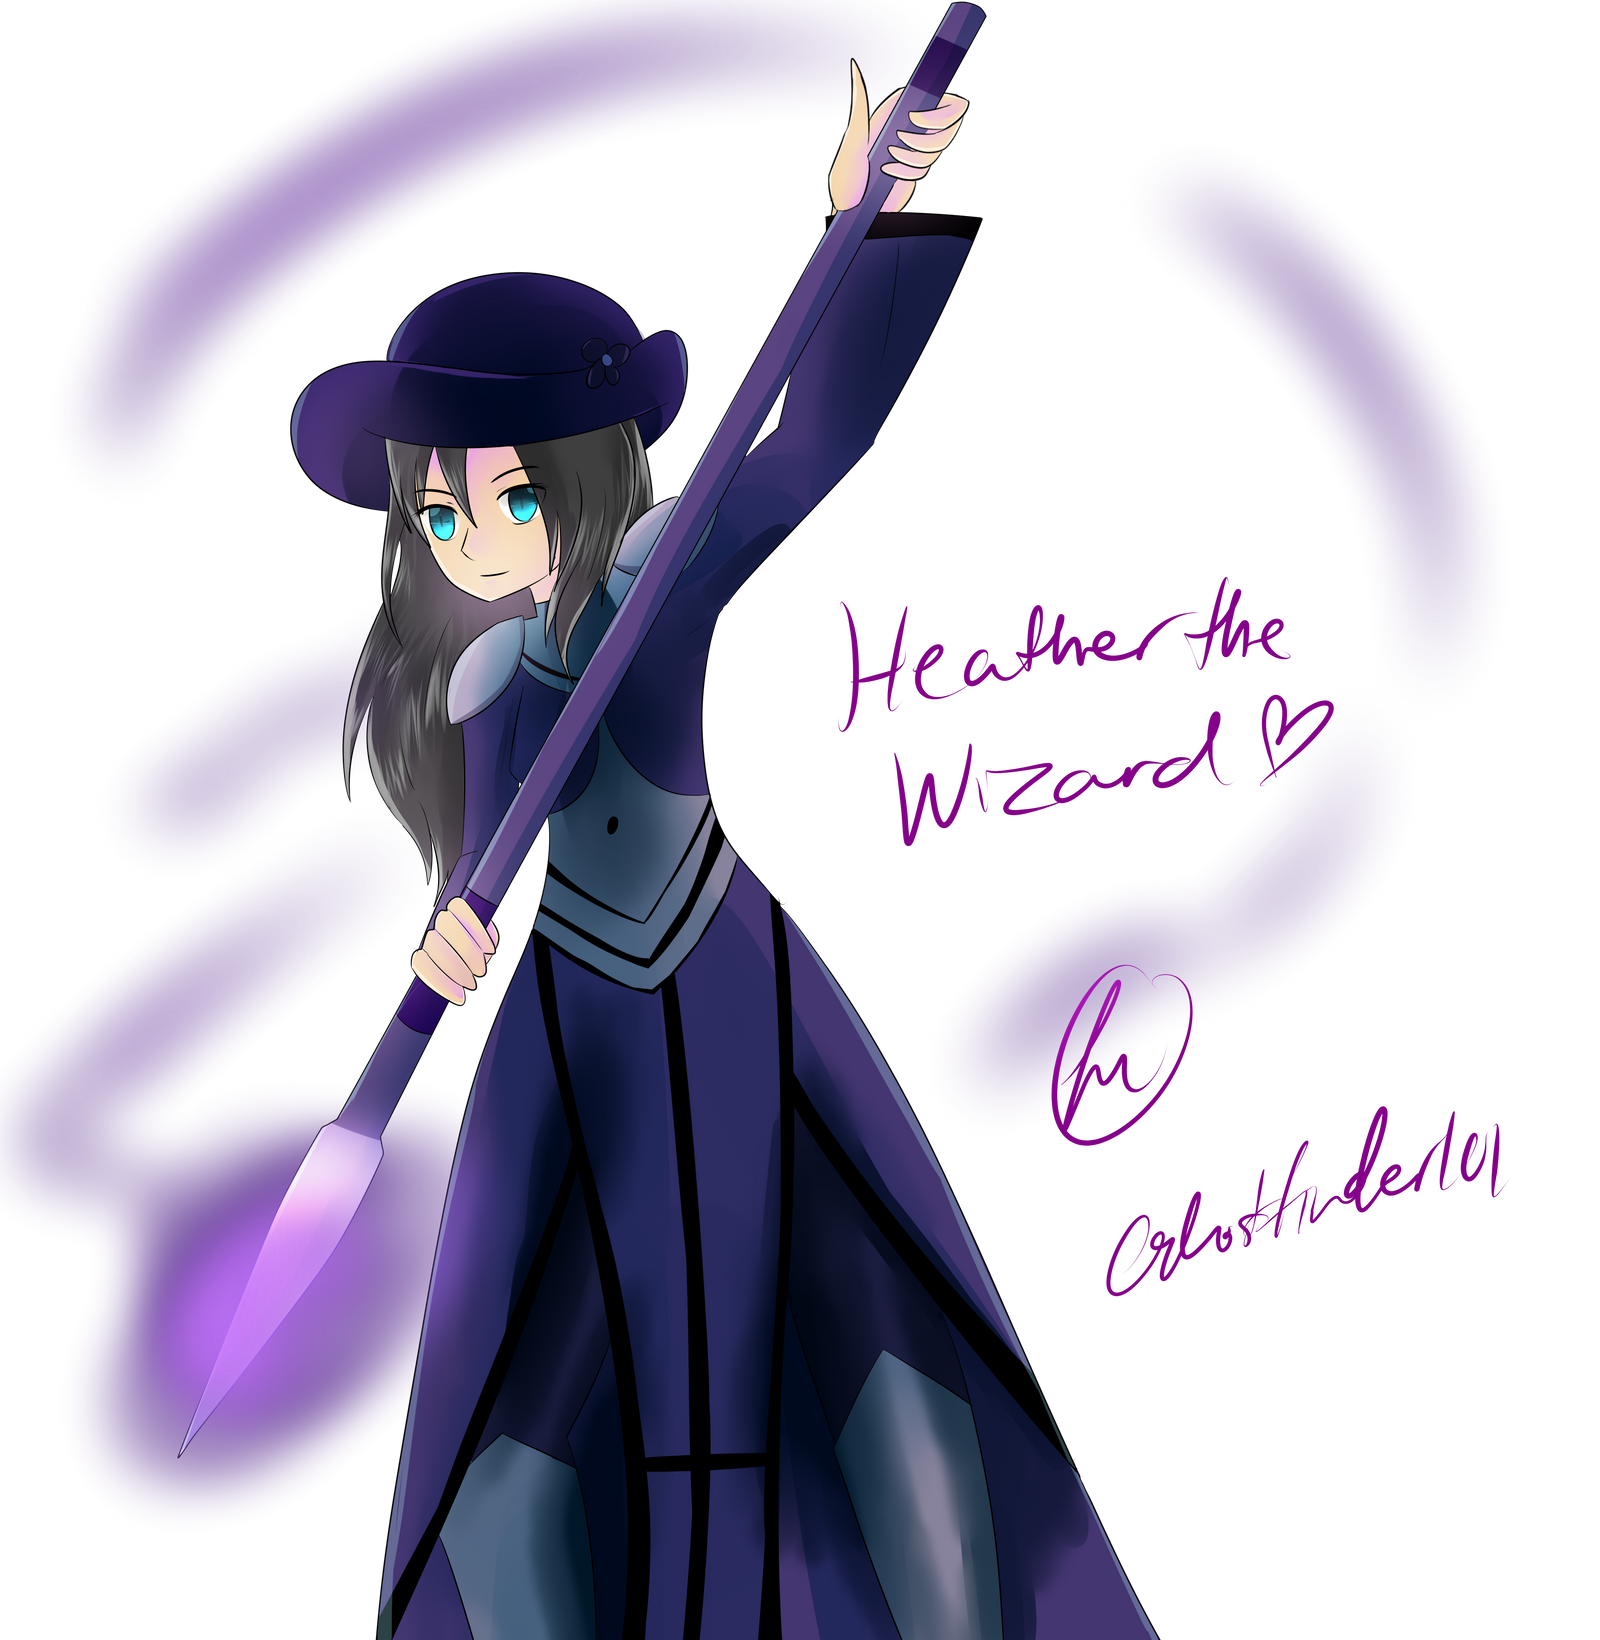 HeathertheWizard by ChronoWither